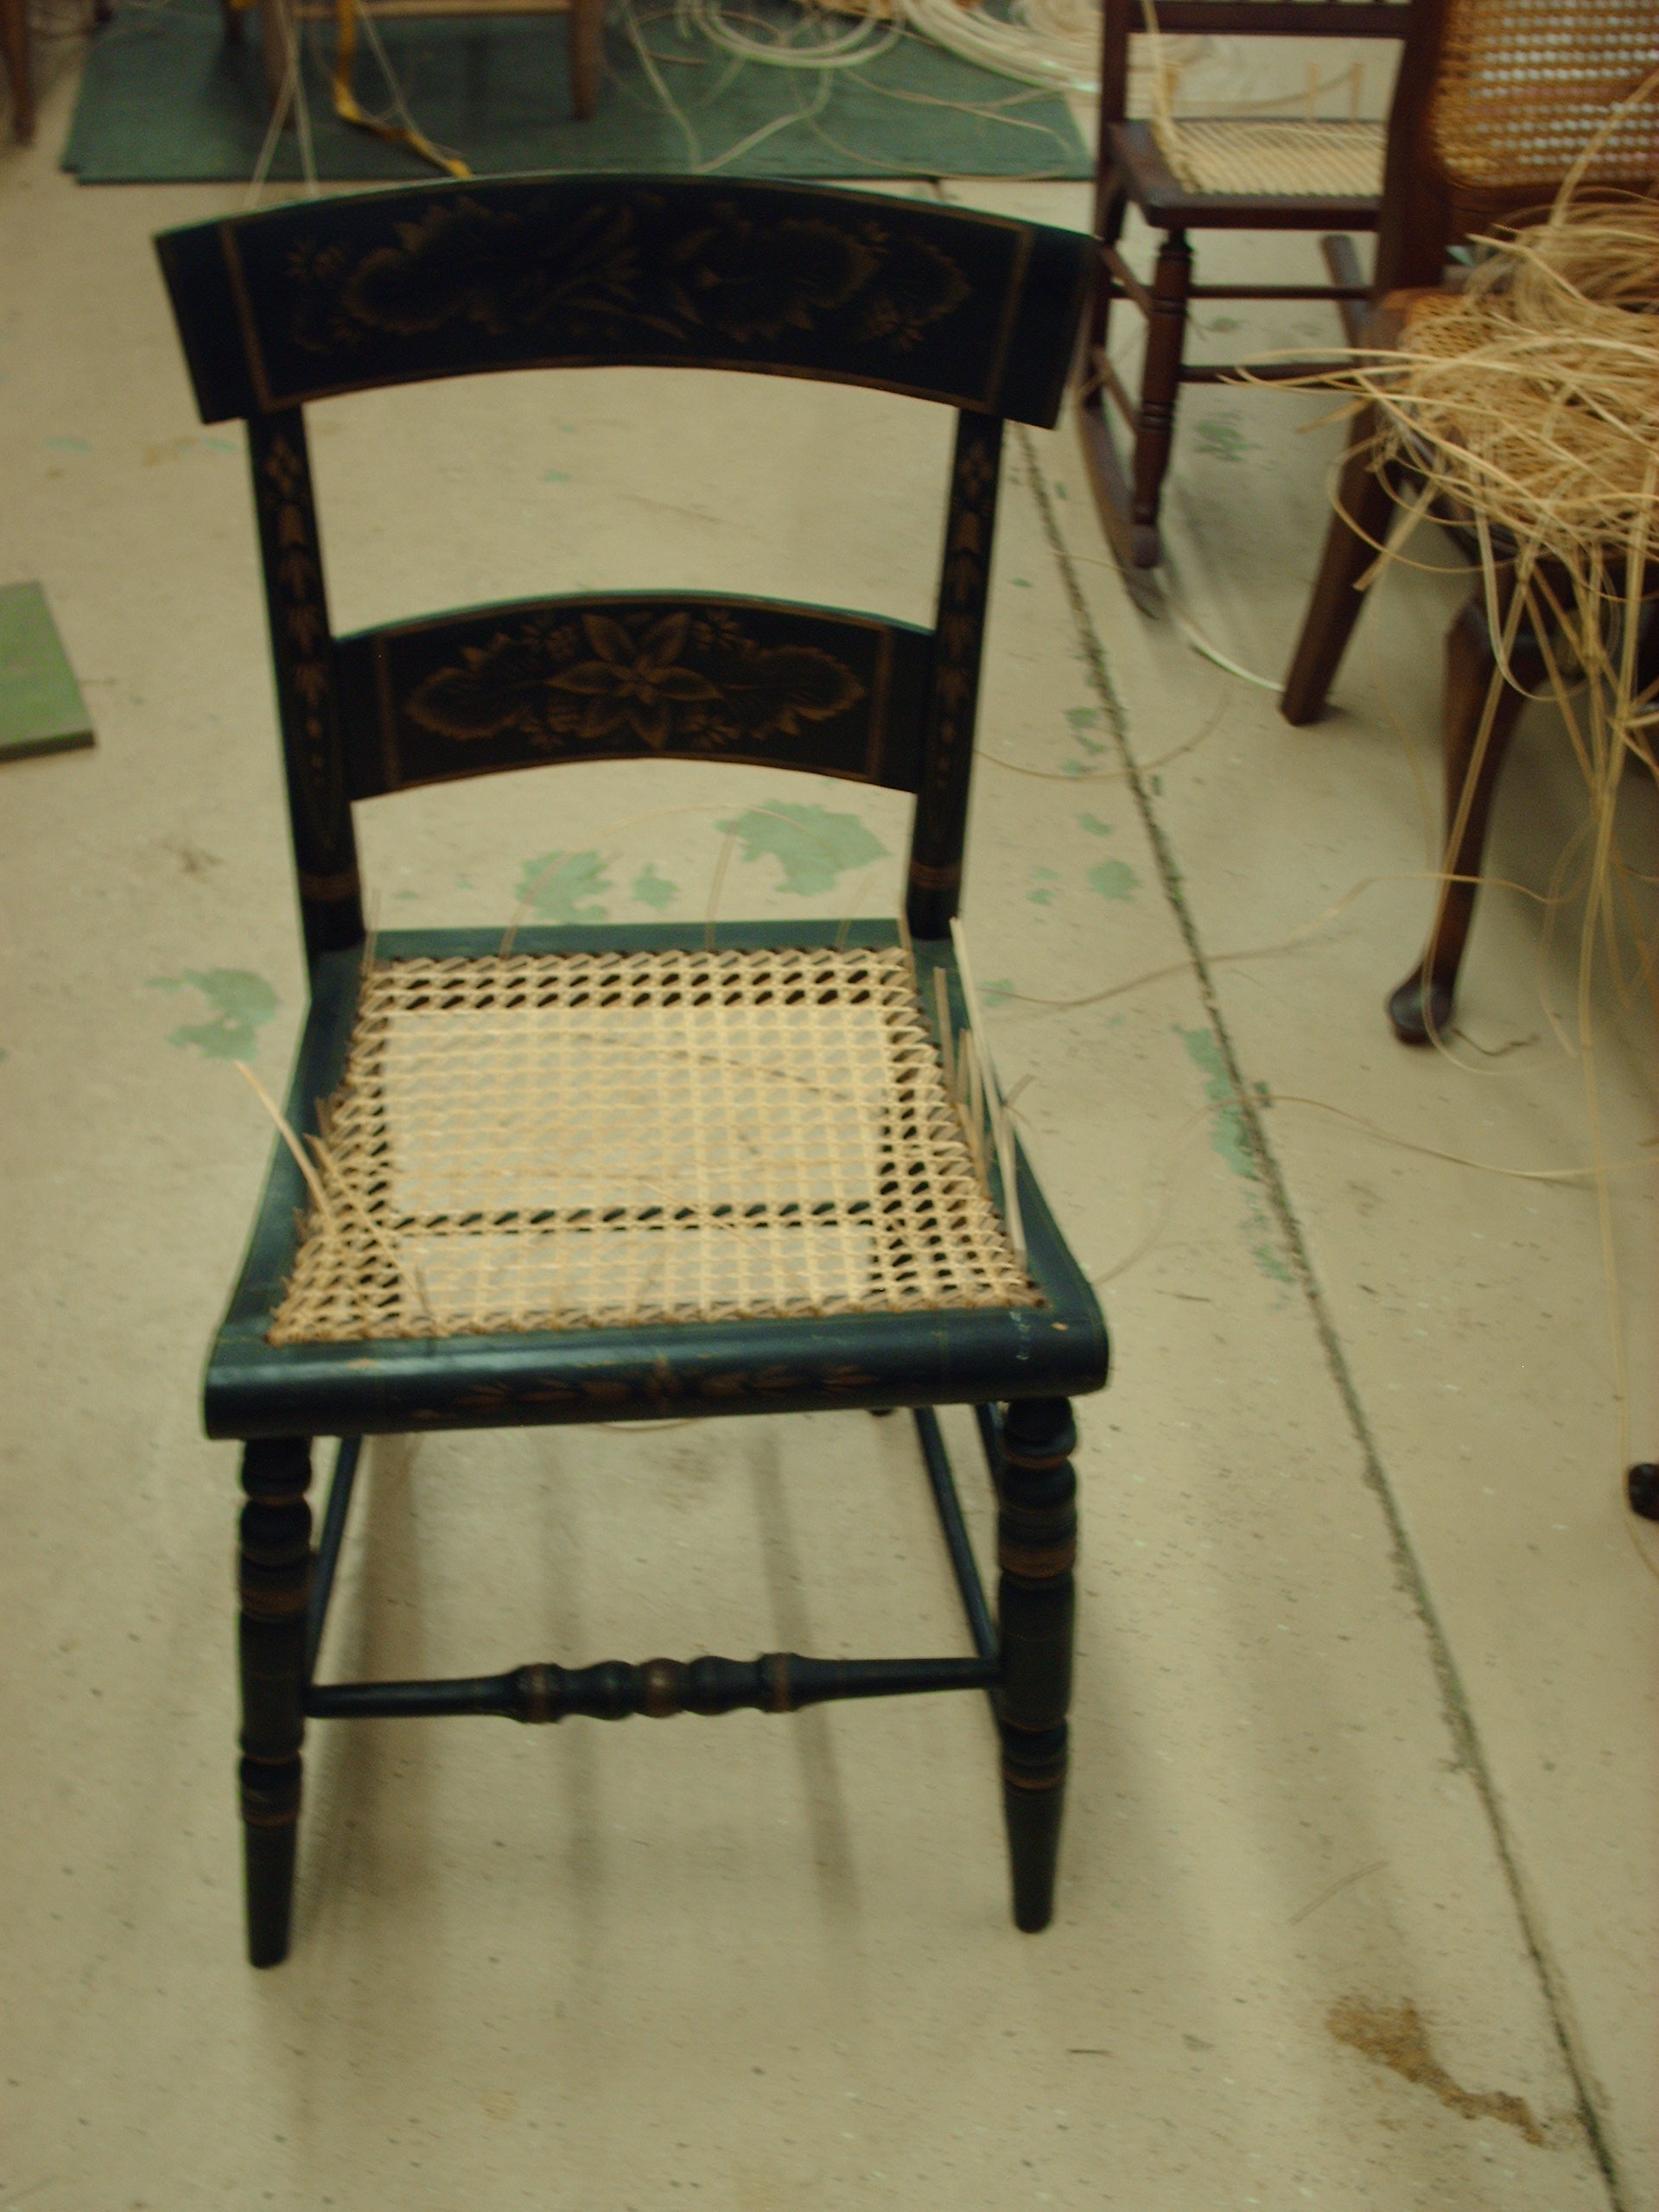 Old Chairs Regain New Life & Old Chairs Regain New Life | Heritage Basket Studio